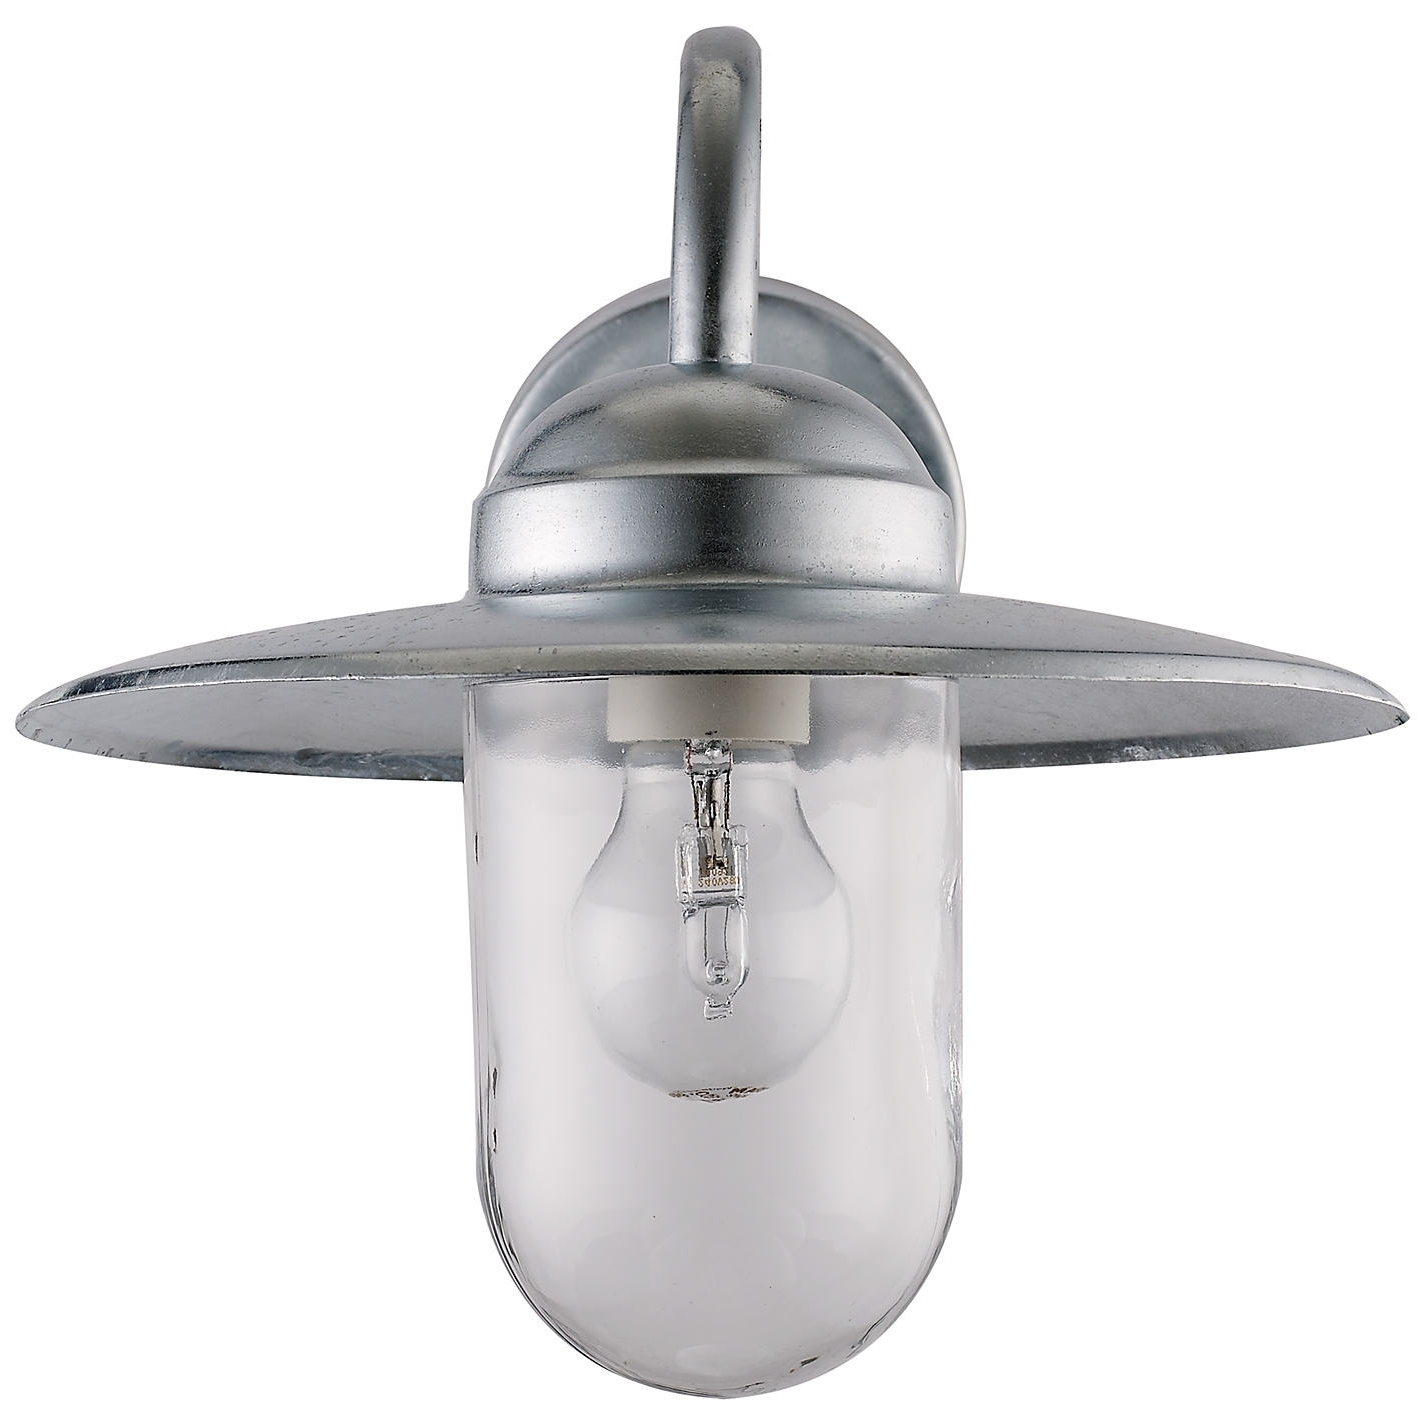 Pir Sensor Outdoor Wall Lighting Pertaining To Preferred Outdoor Pir Lighting Sensors • Outdoor Lighting (View 11 of 20)